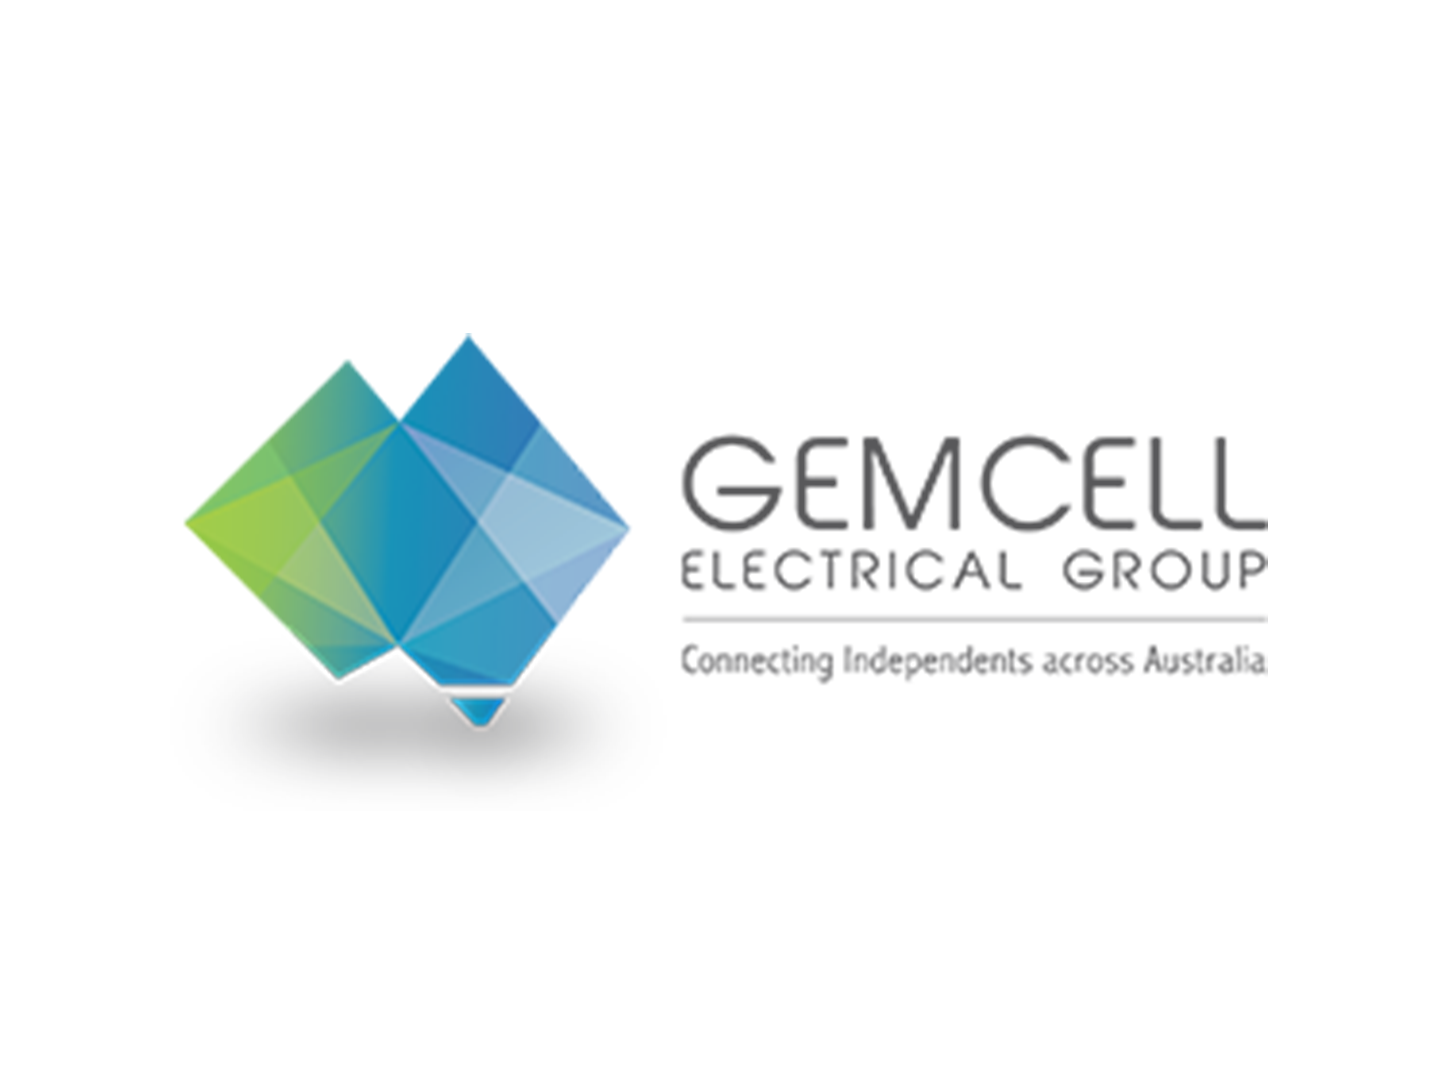 Gemcell Electrical Group